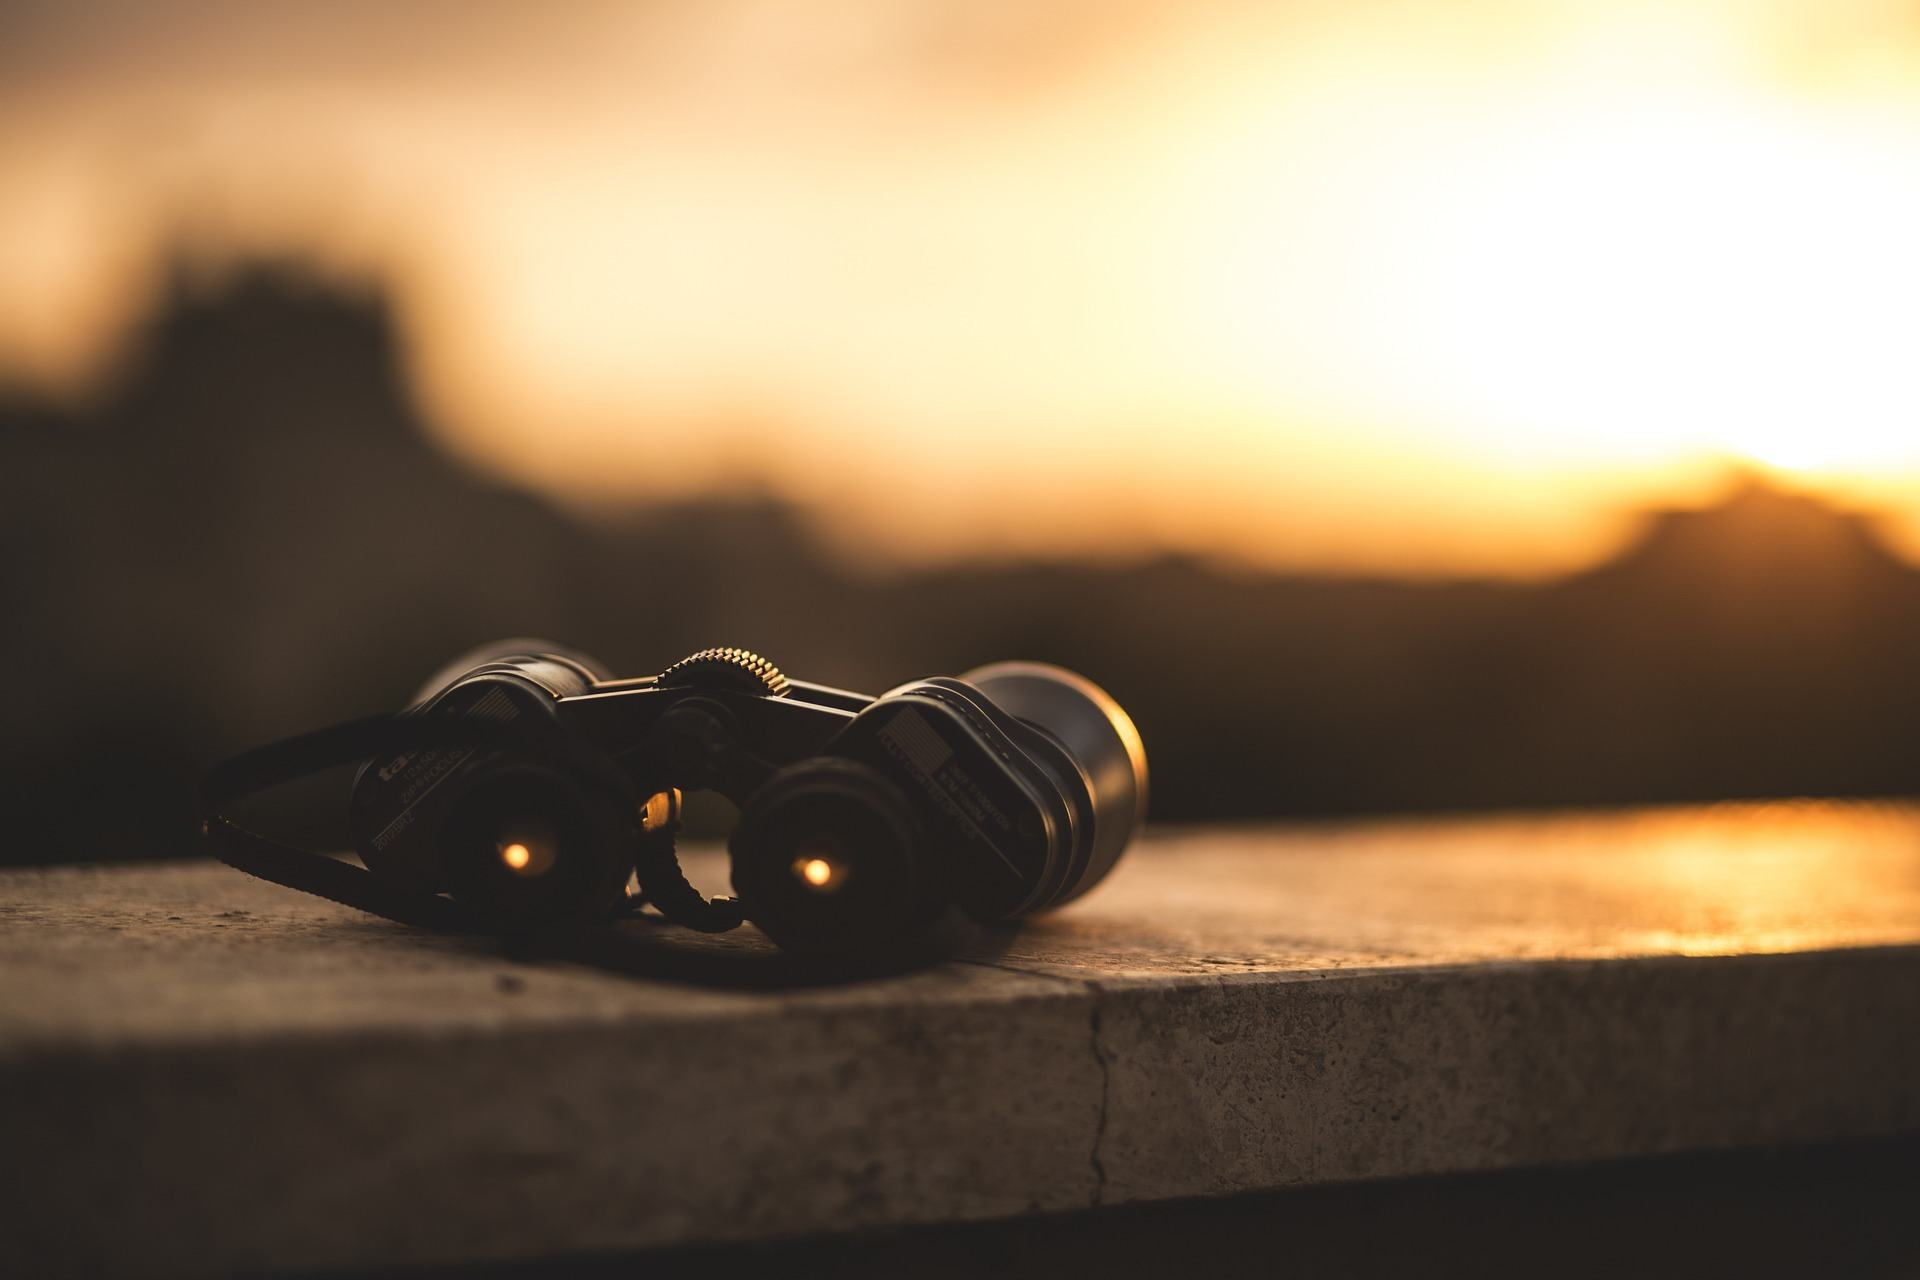 A pair of leica binoculars on a table at sunset.